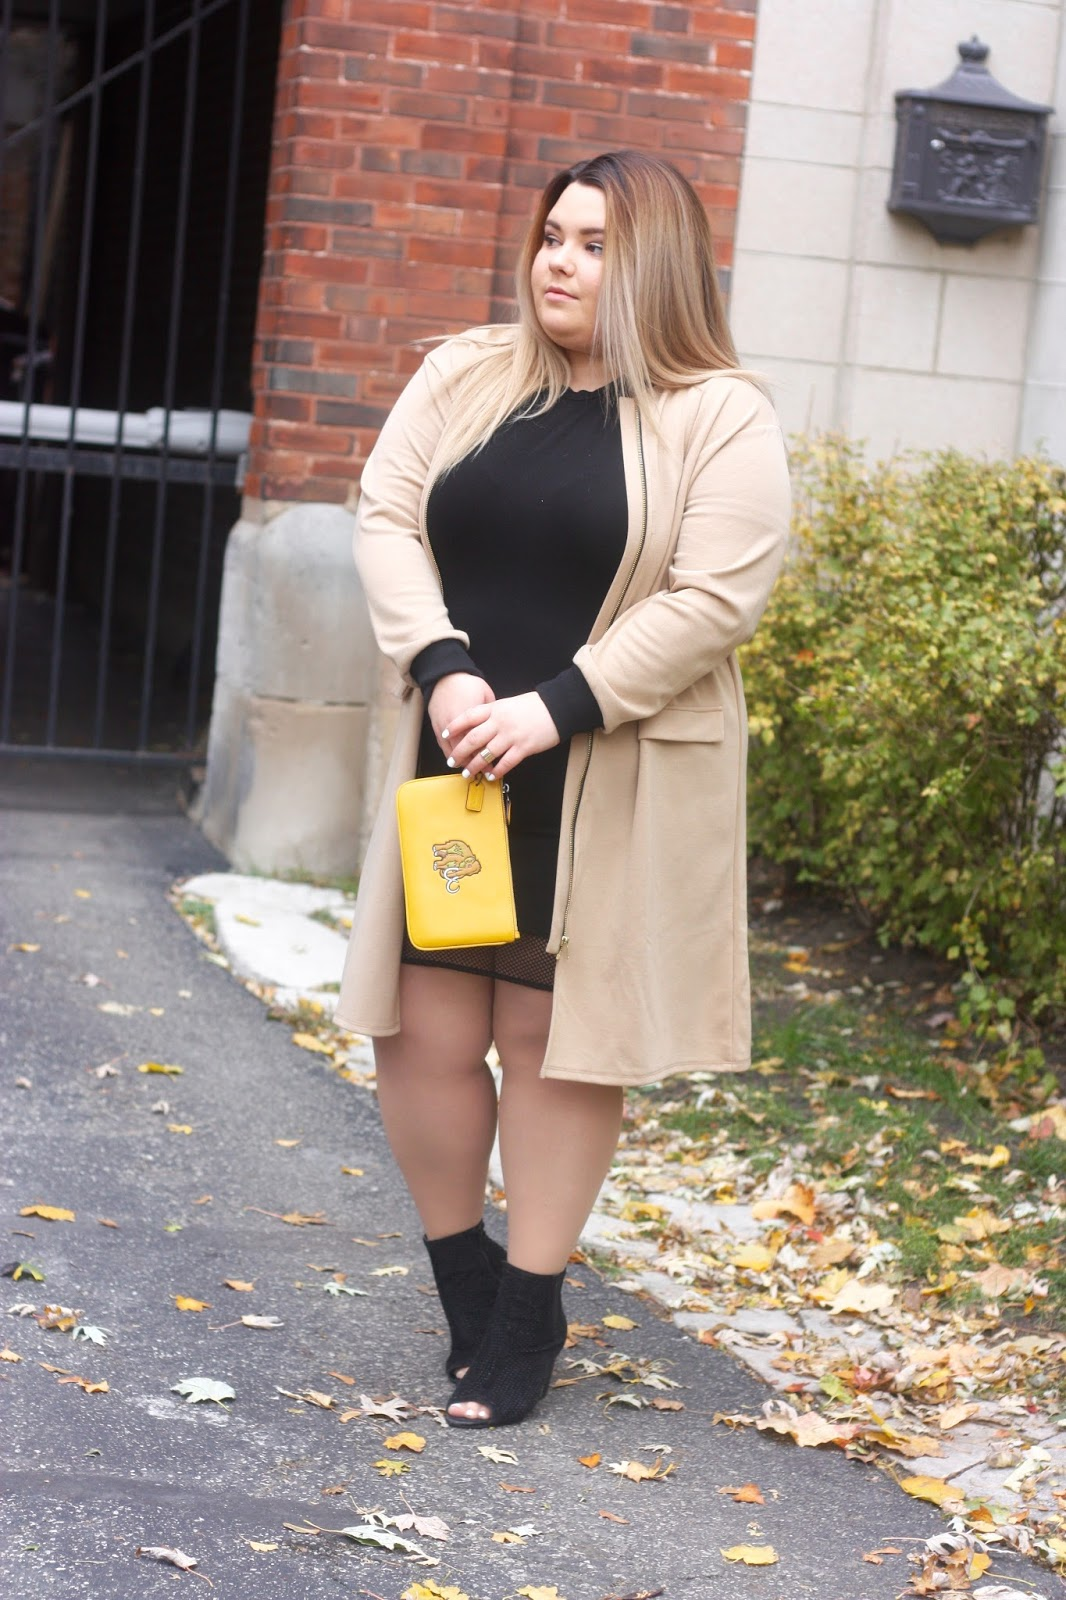 plus size fashion, natalie craig, natalie in the city, pink clove, longline bomber, nude bomber, oversized, jordyn woods, fashion blogger, chicago, natalie in the city, coach, rexy, woolly mammoth, kardashian style, fall 2016 trends, chicago blogger, midwest